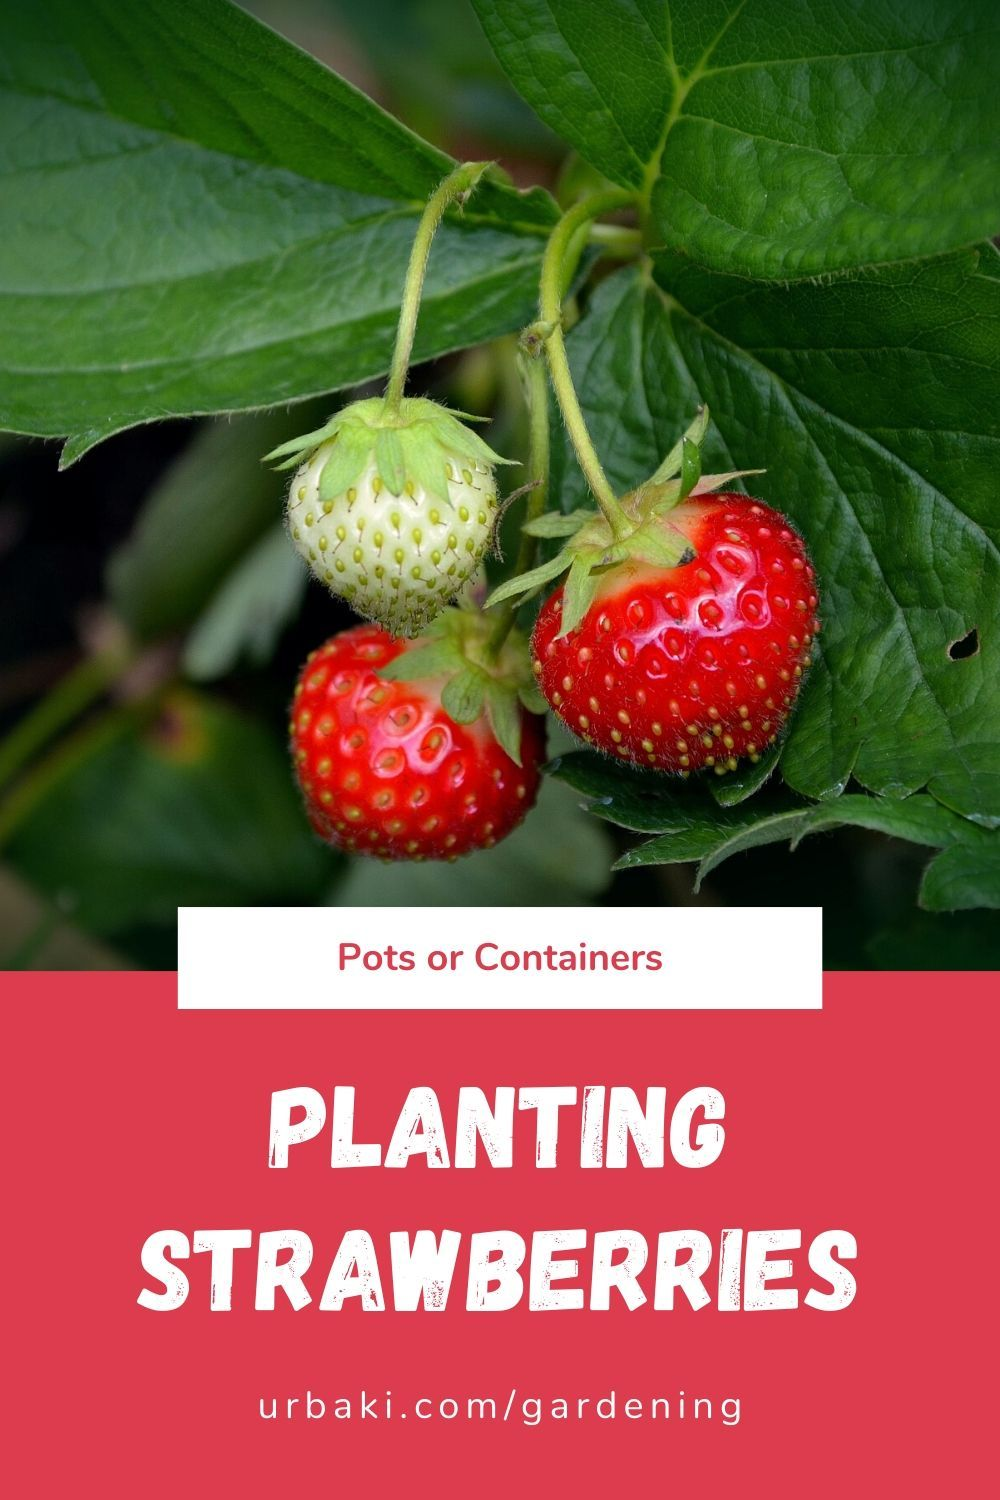 Planting Strawberries In Pots Or Containers In 2020 Strawberry Plants Strawberry Strawberries In Containers